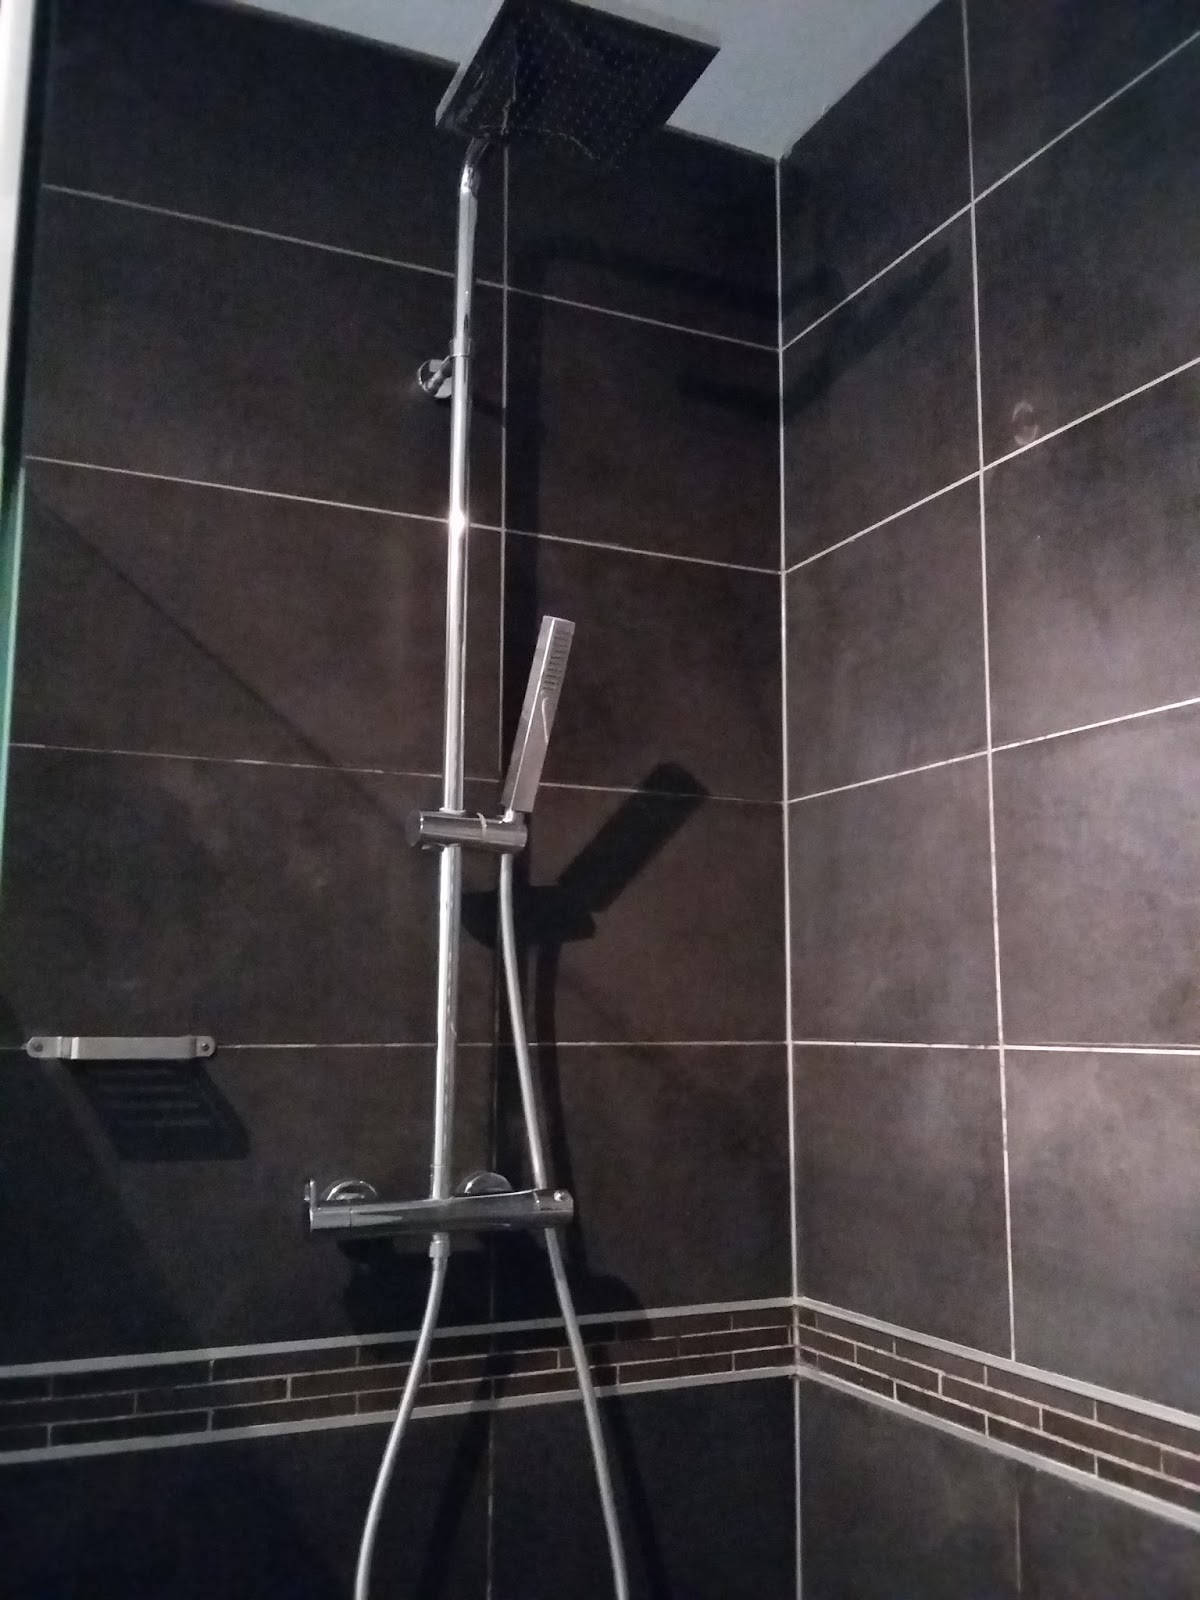 Bricolage de l 39 id e la r alisation douche l 39 italienne carrel e design for Pose carrelage douche a l italienne